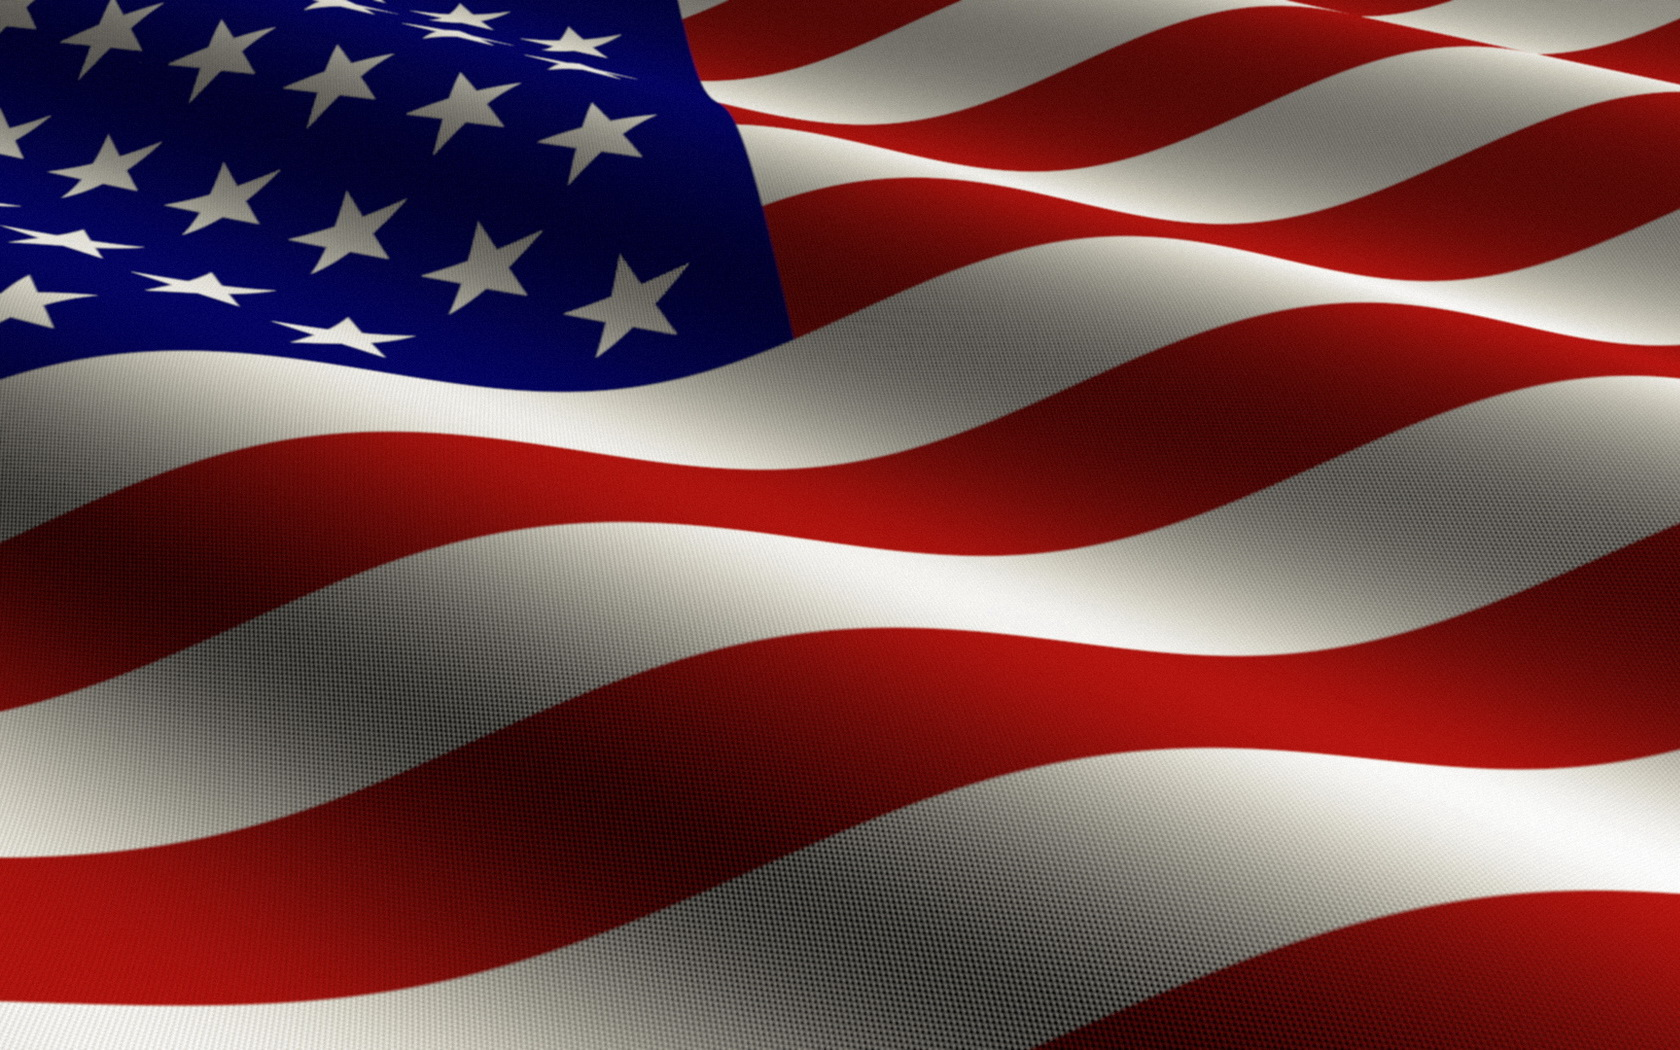 USA American Flag wallpaper 1680x1050 152556 WallpaperUP 1680x1050